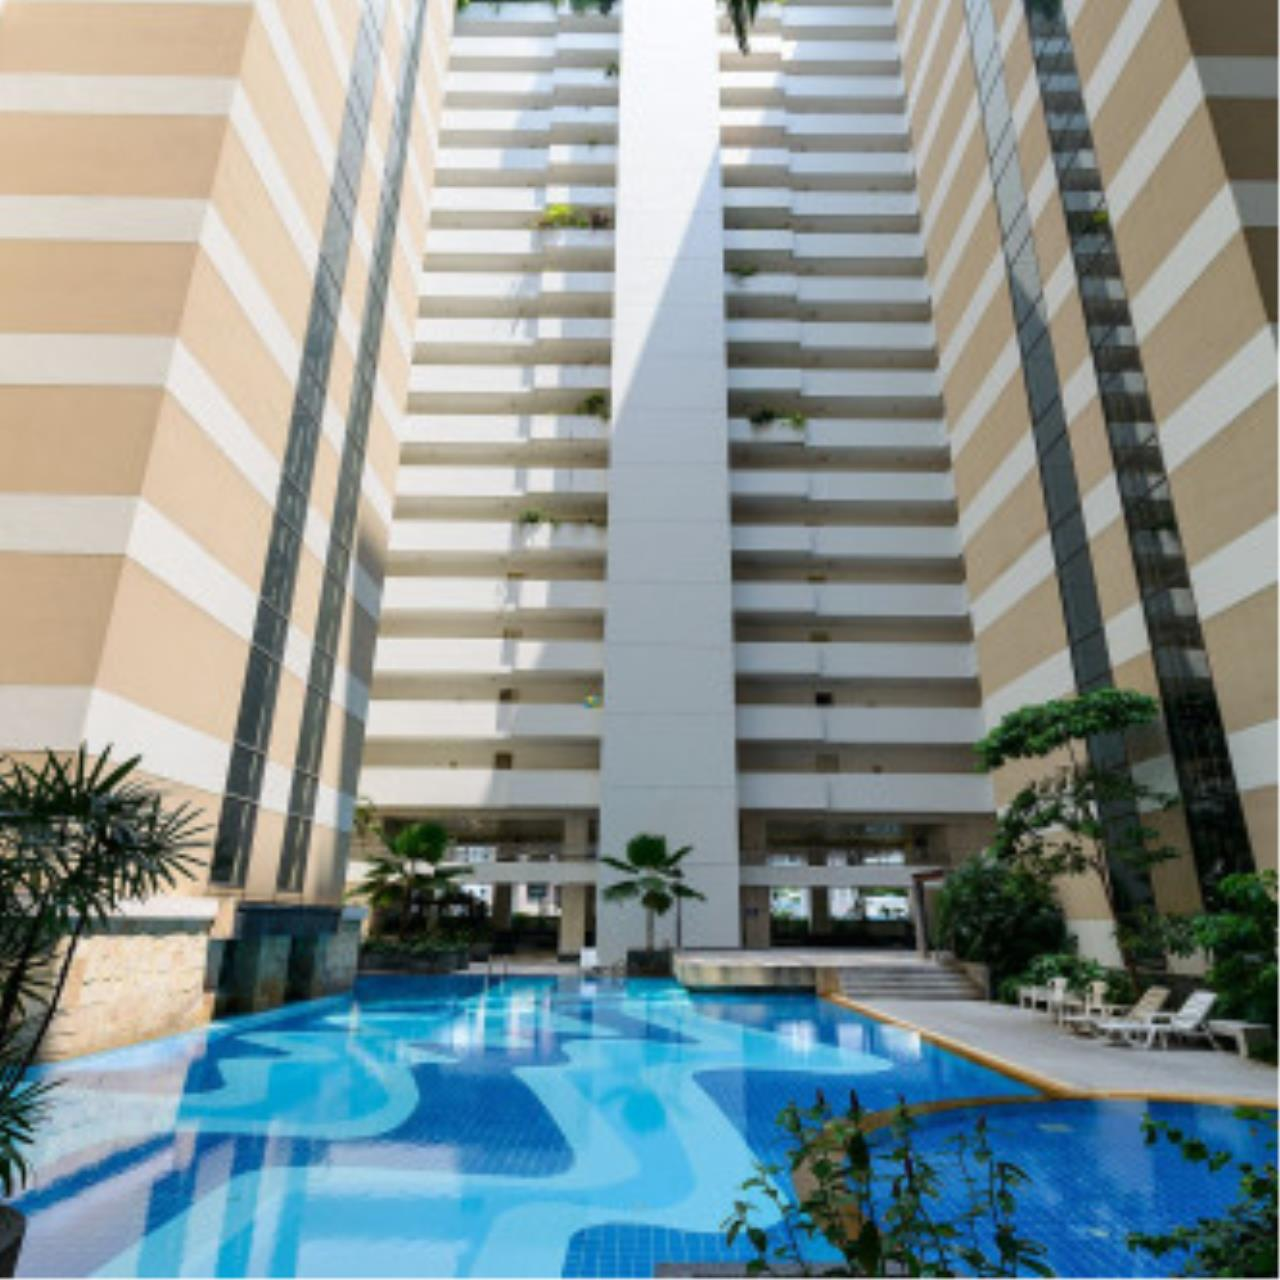 Quality Life Property Agency's  Regent Royal Place 2 / 2 Bedroom / 24 Floor 4